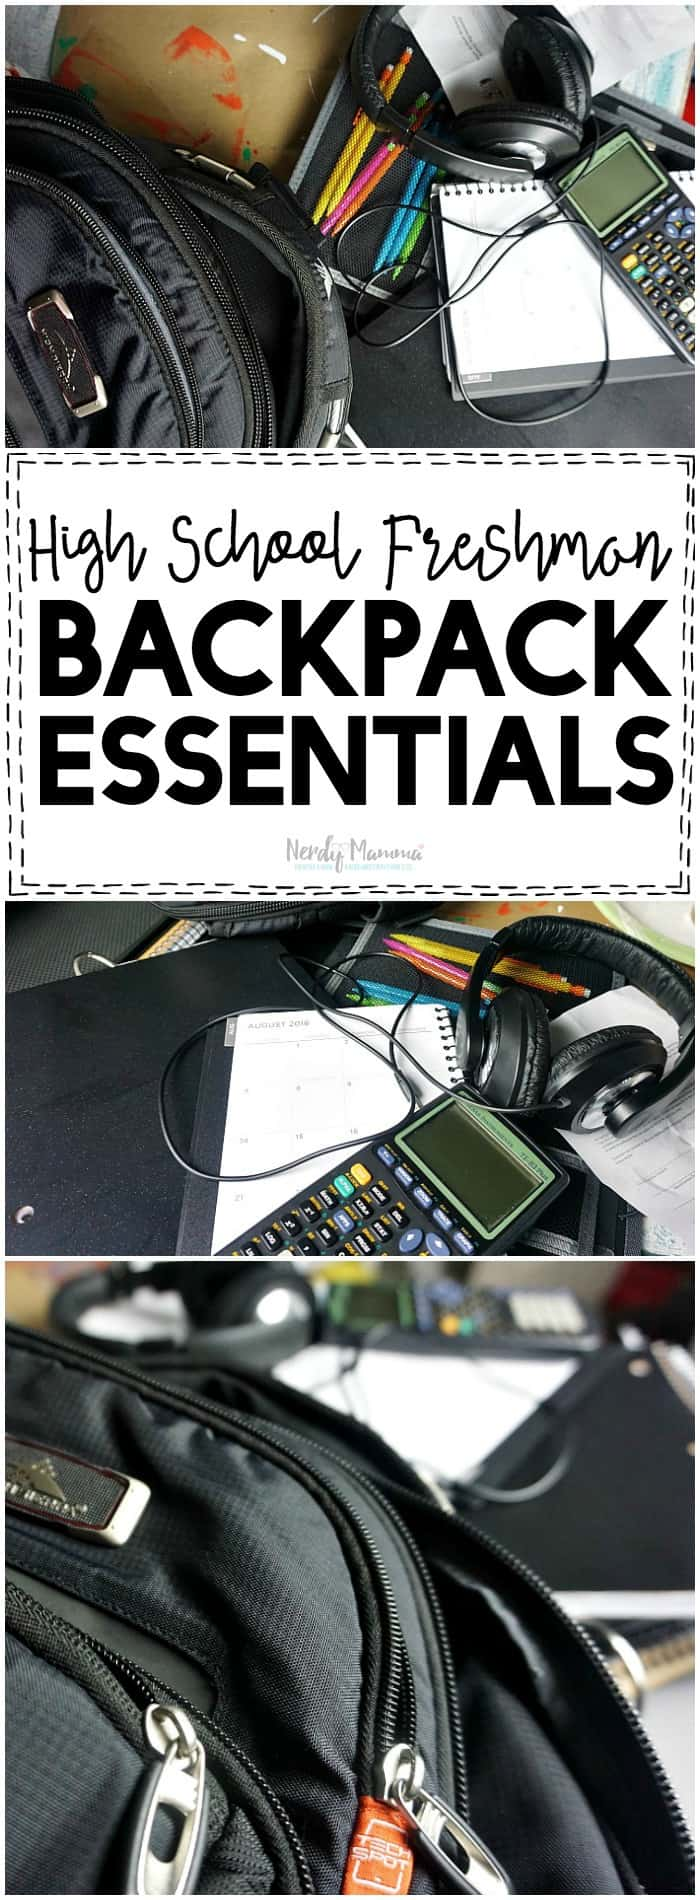 These are such great tips for a High School Freshman's Backpack. Love it!